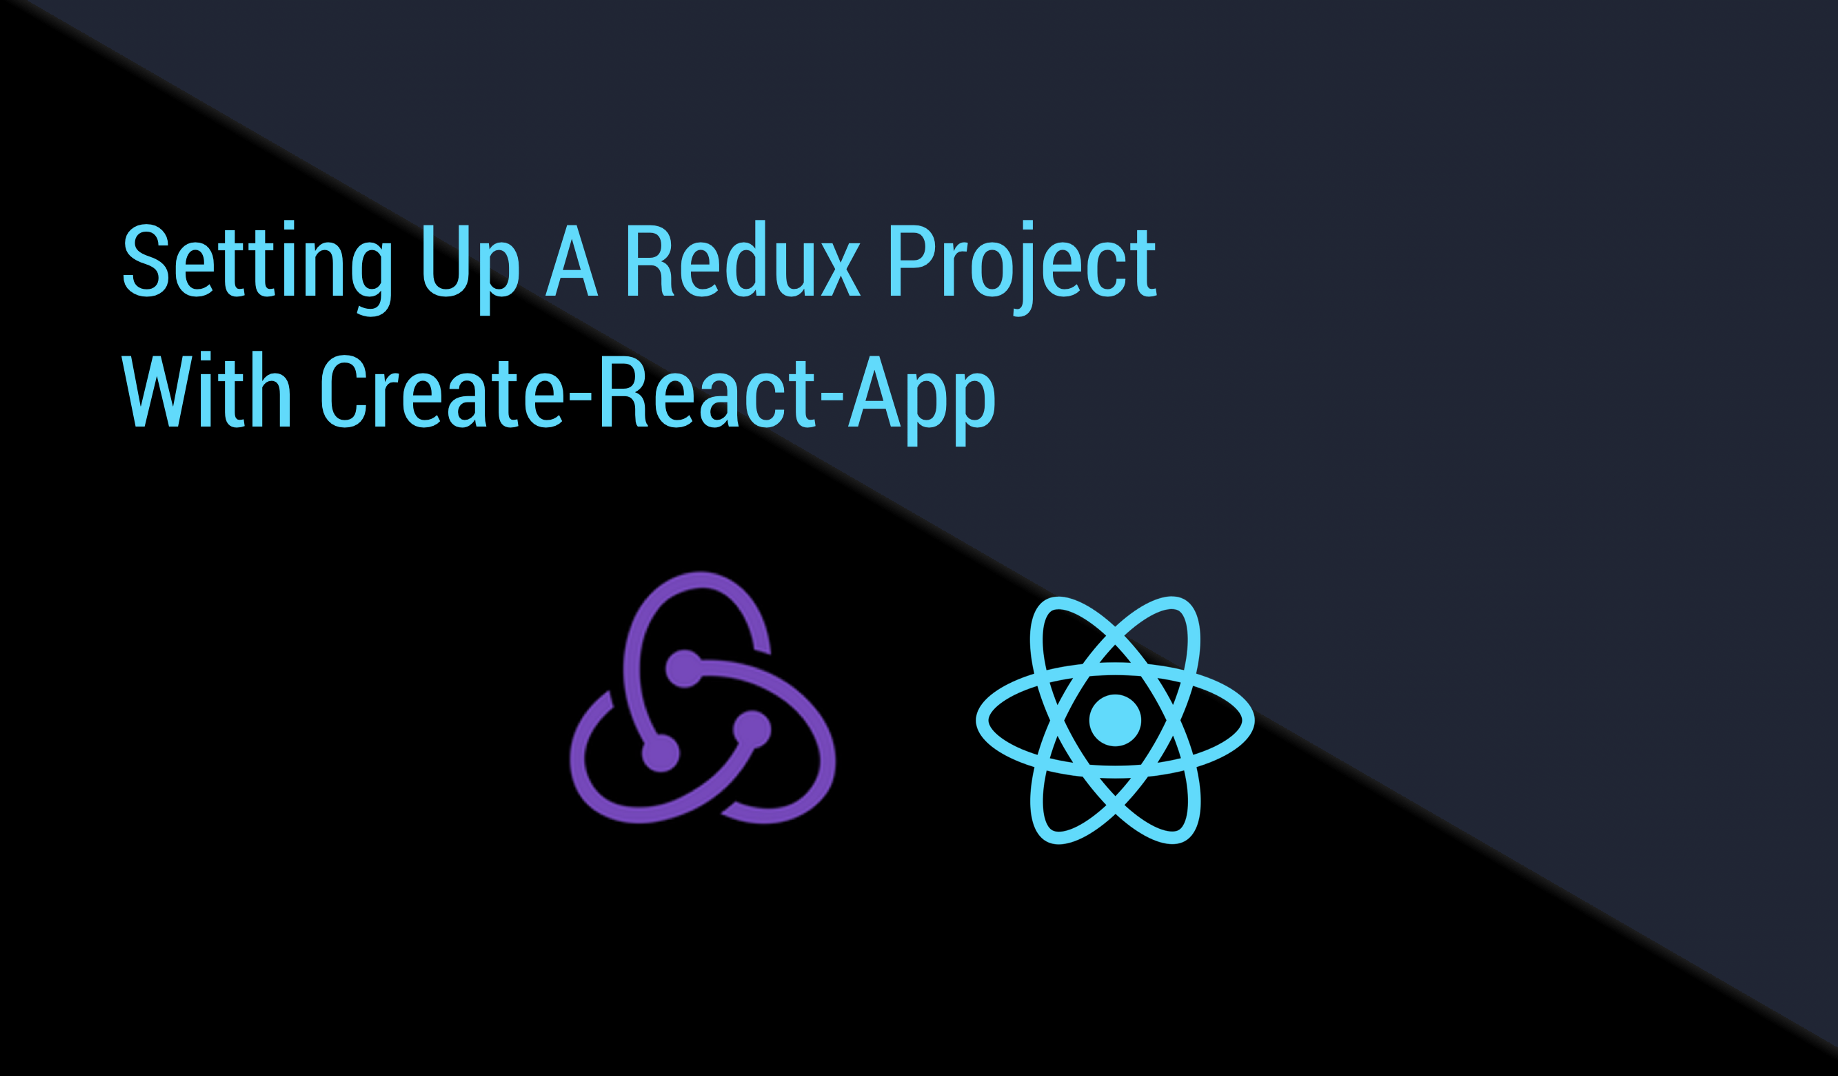 Setting Up a Redux Project With Create-React-App - Backticks